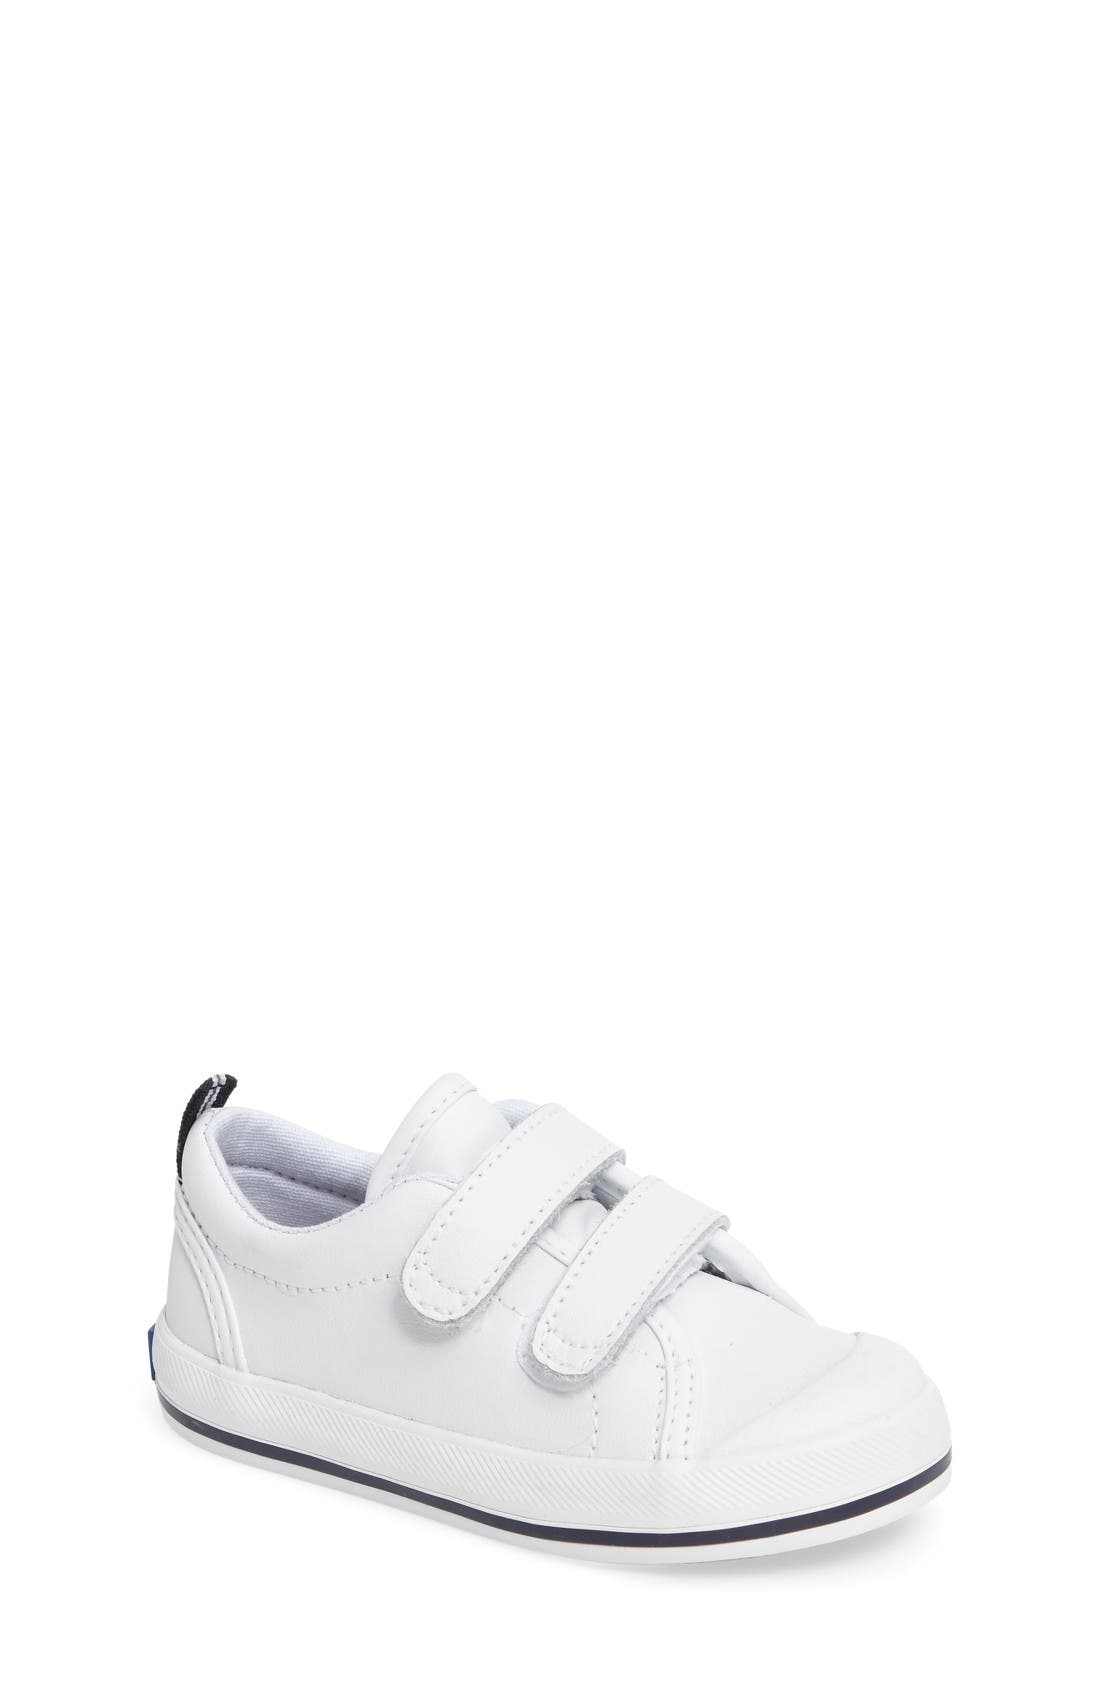 Alternate Image 1 Selected - Keds® 'Graham' Hook & Loop Sneaker (Baby, Walker & Toddler)